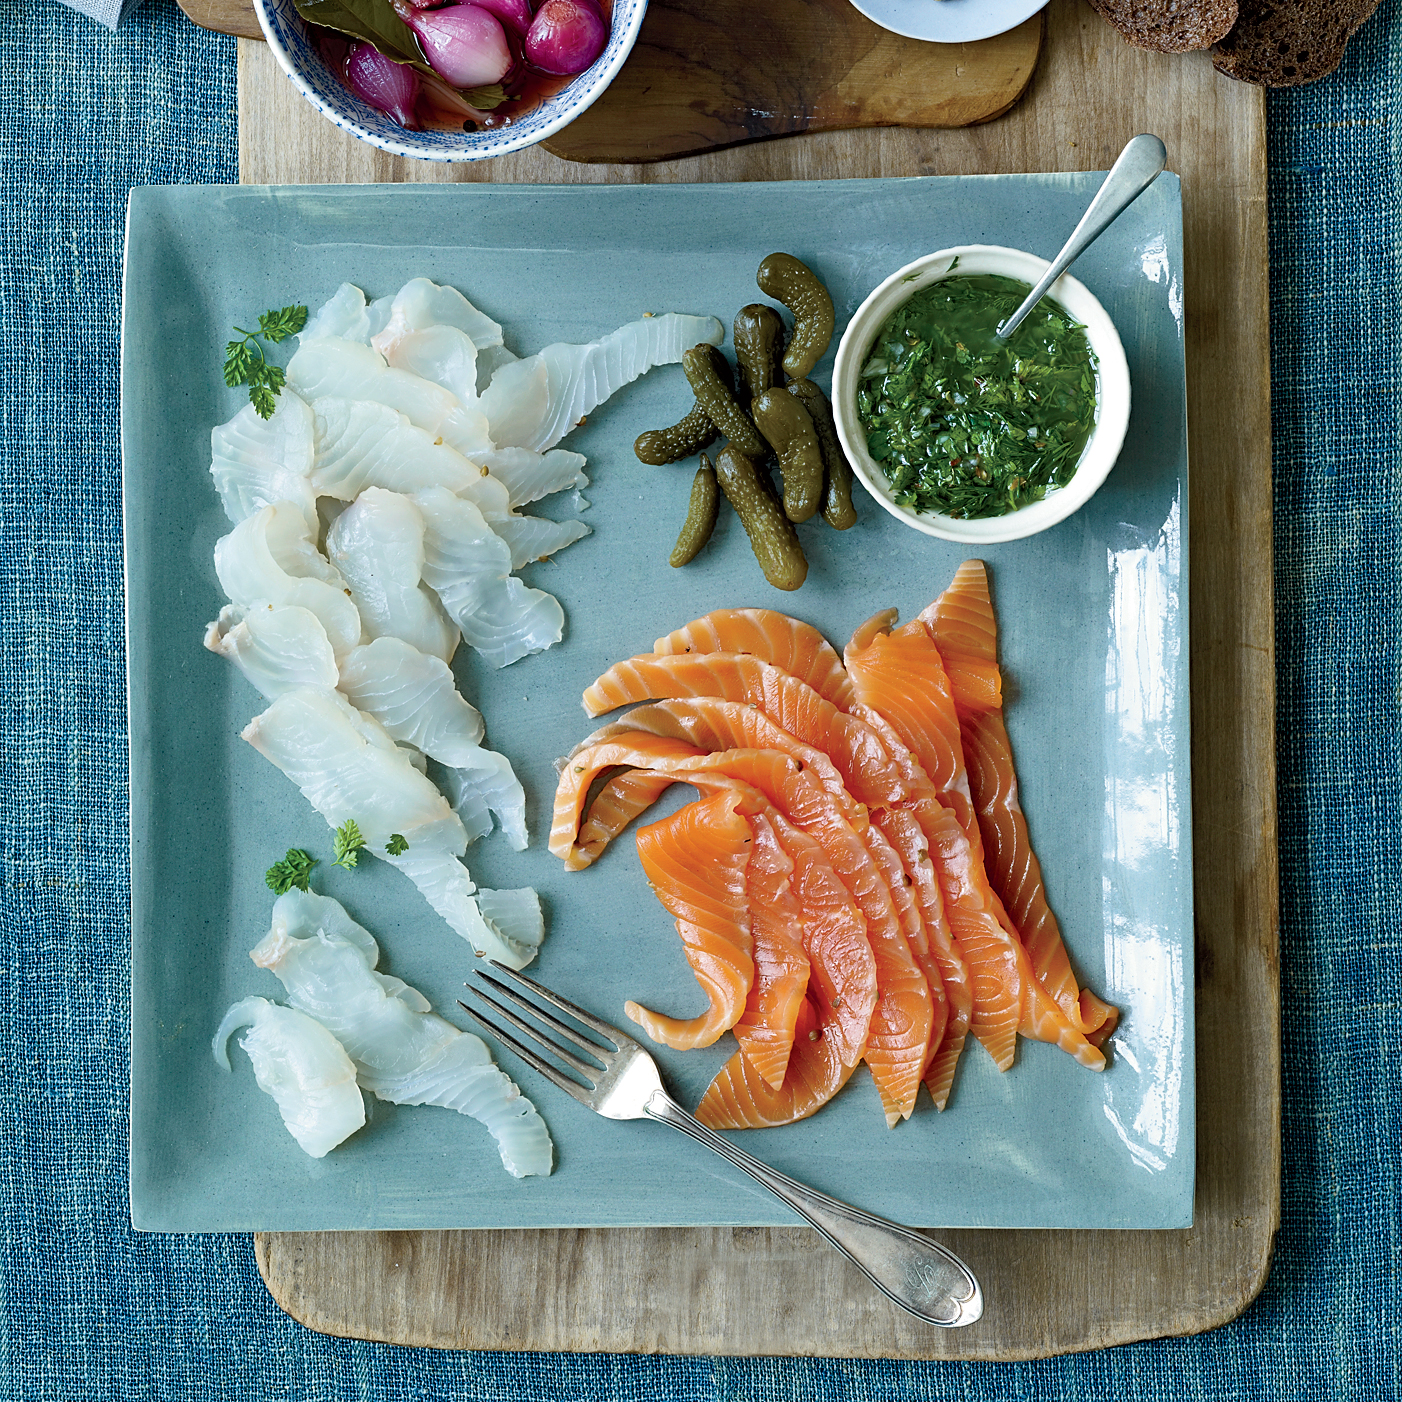 Three-Day Brined Lox with Anise-Herb Sauce